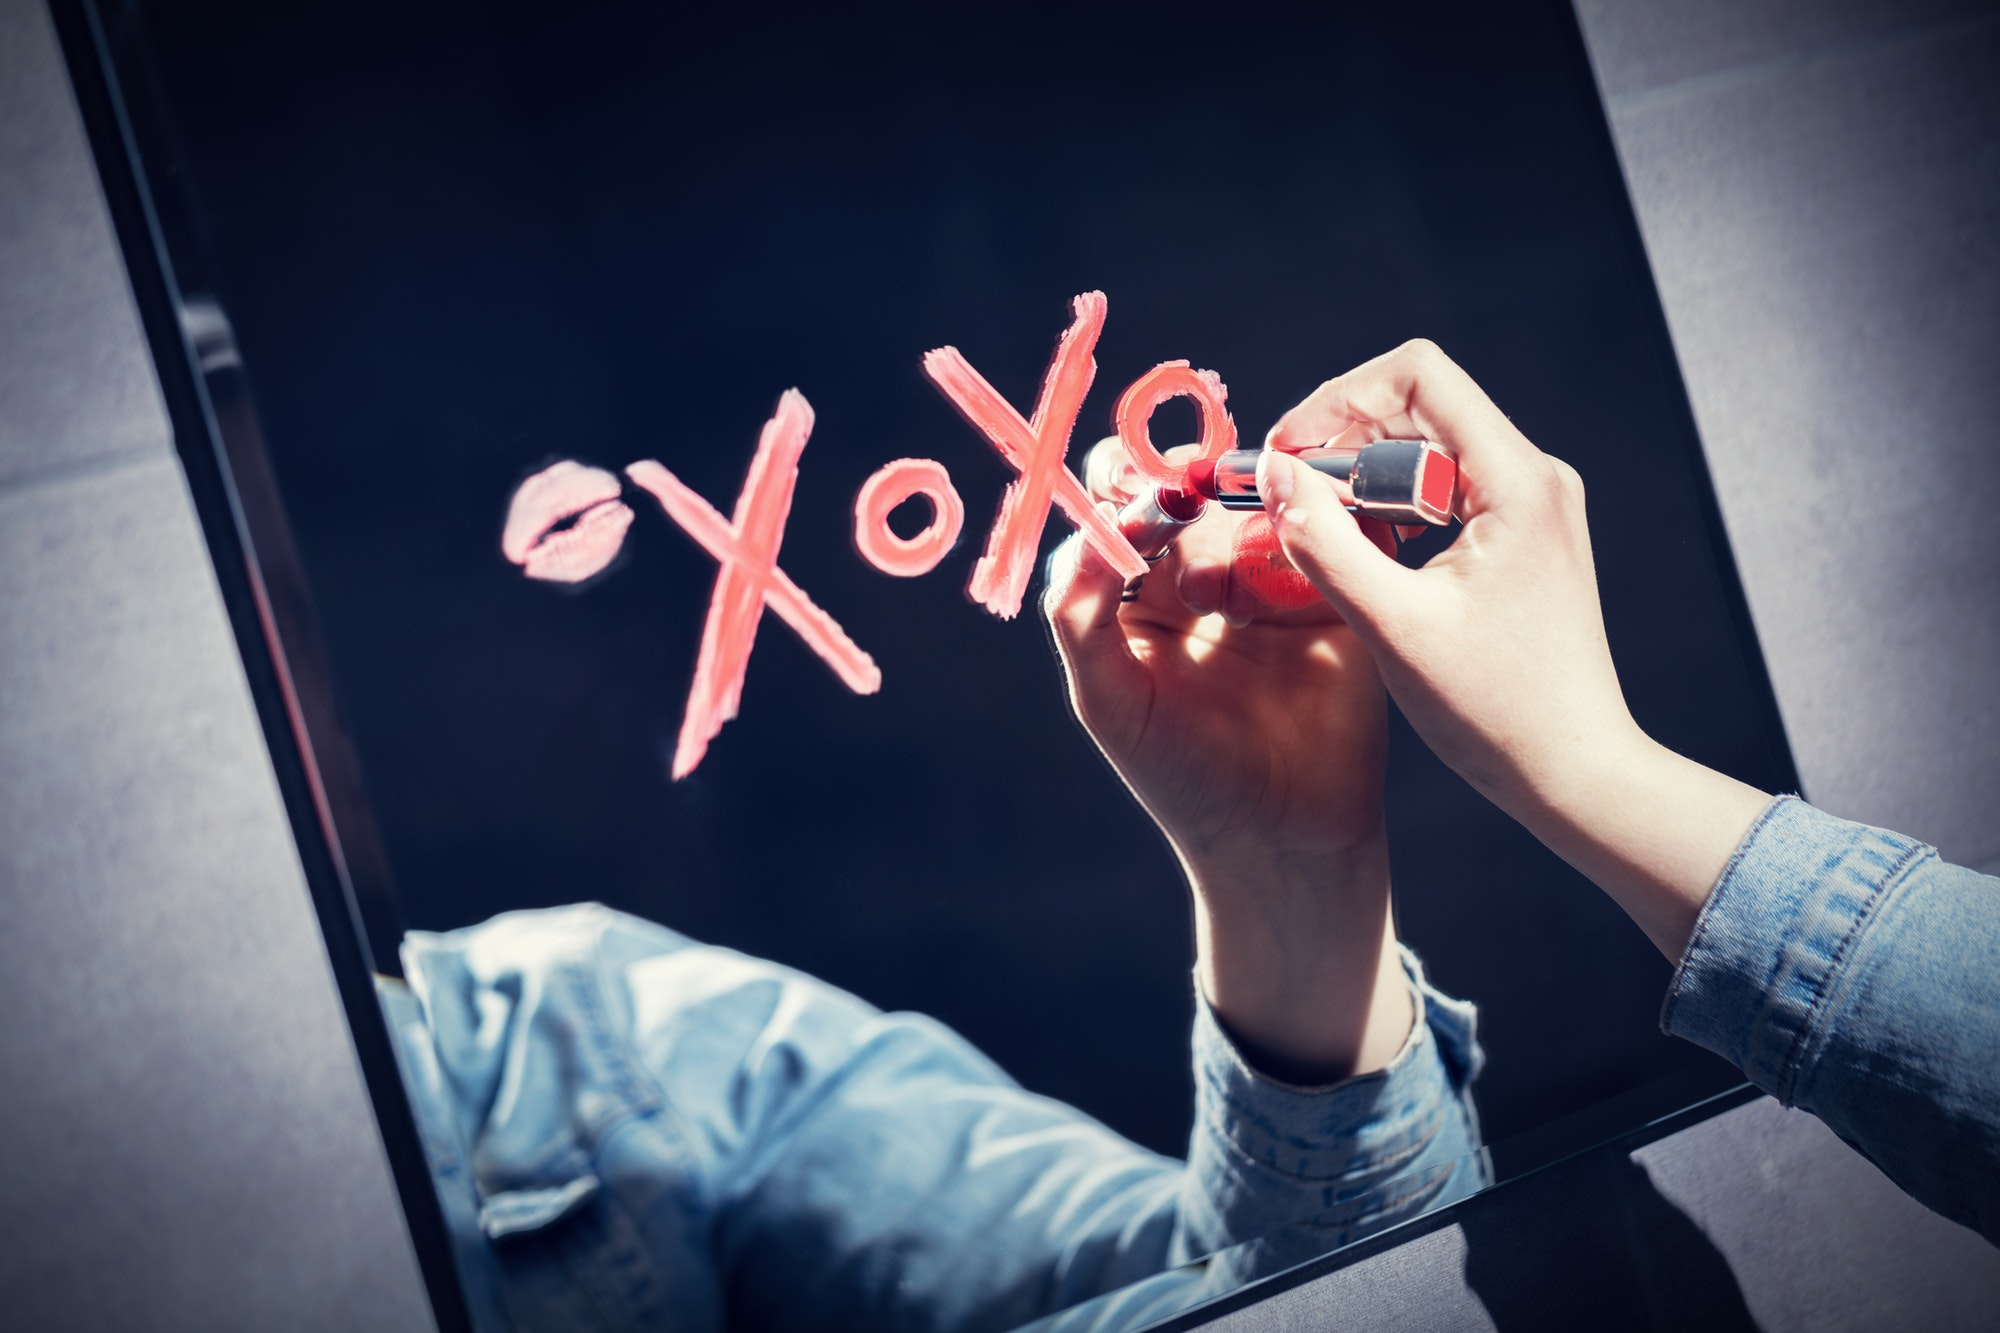 Woman writing xoxo on a mirror with red lipstick.